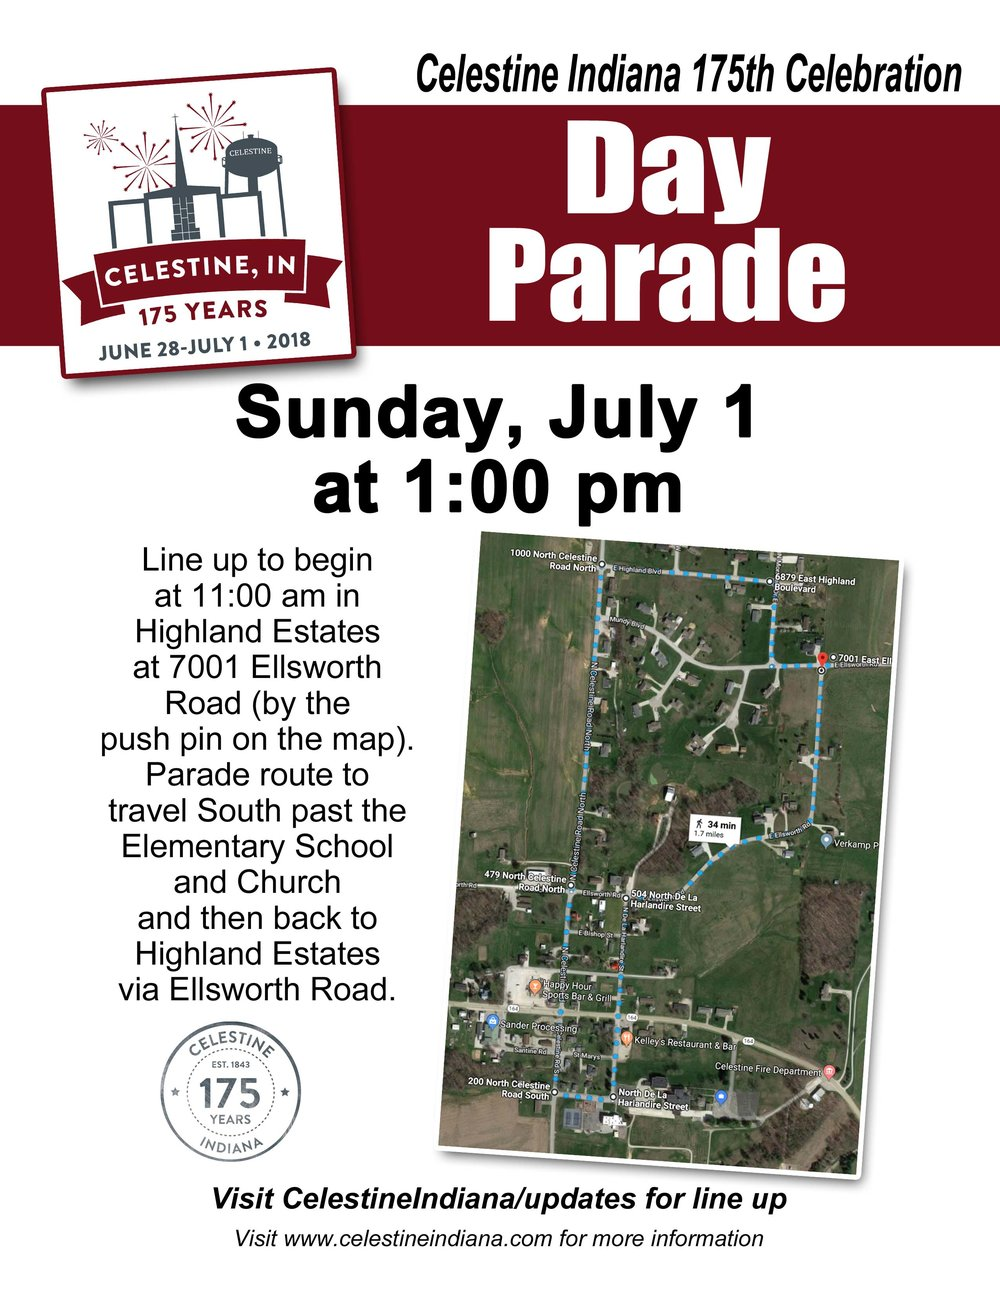 Day Parade Flyer2_edited-1.jpg